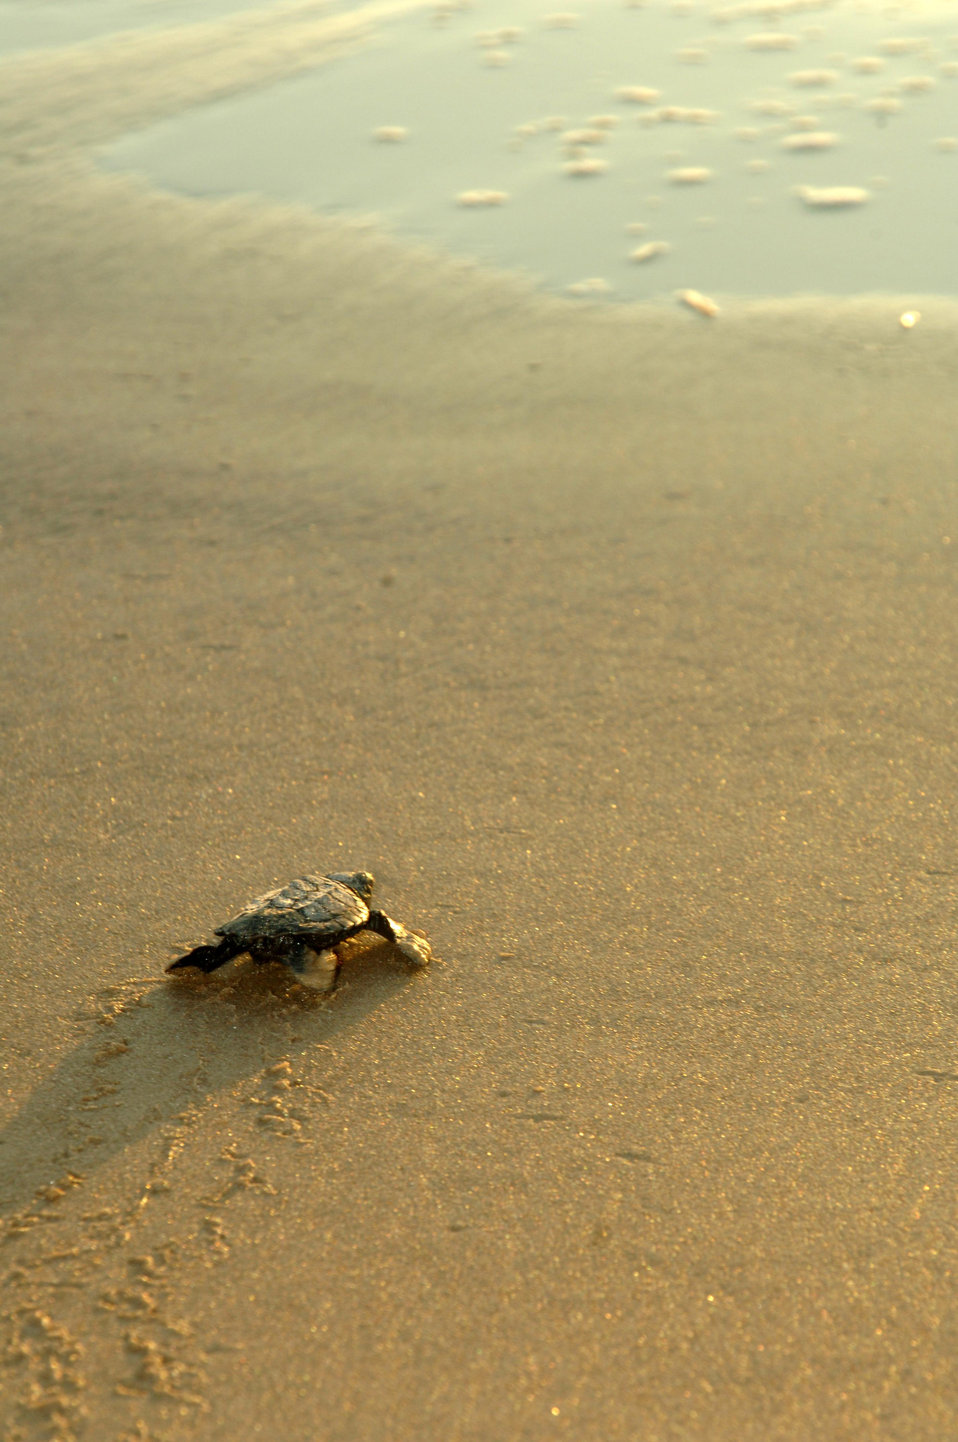 Turtle hatchling heading for the ocean